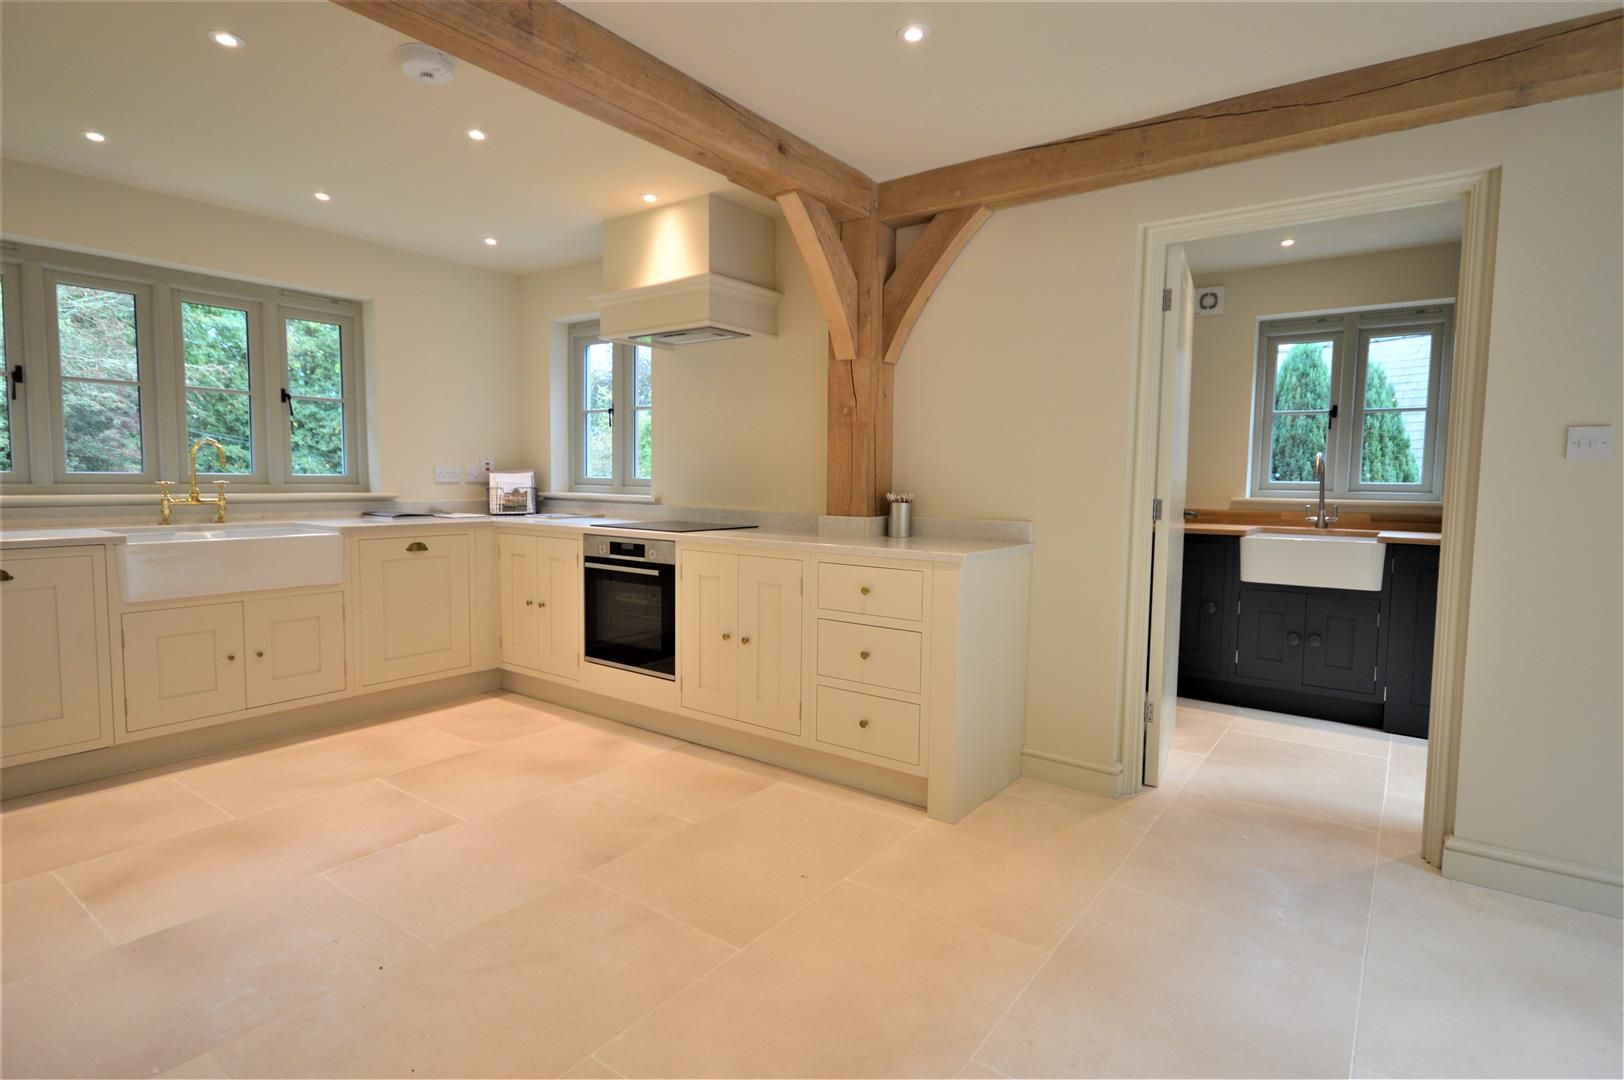 3 bed house for sale in Dilwyn 4